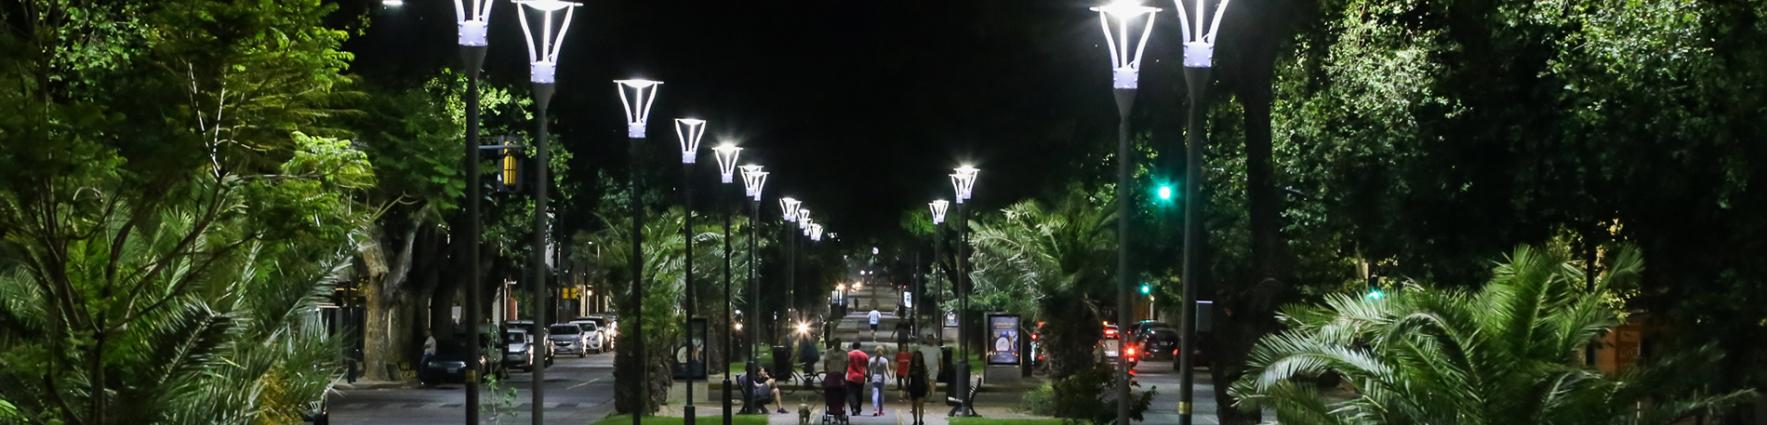 Luces led en Bv. Oroño